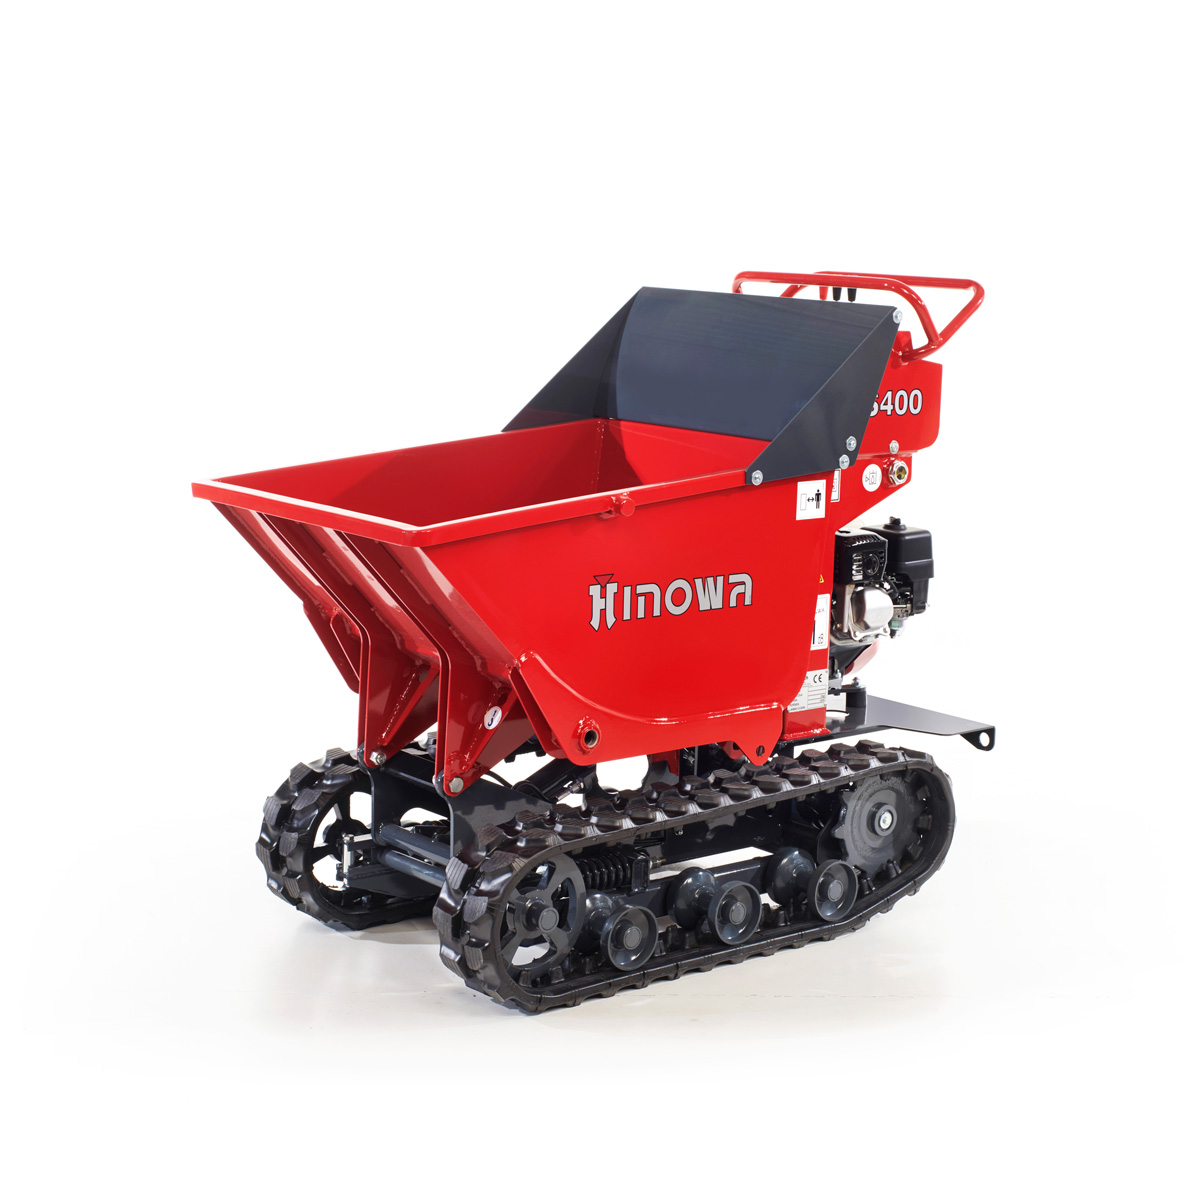 Minidumper hs400 construction version